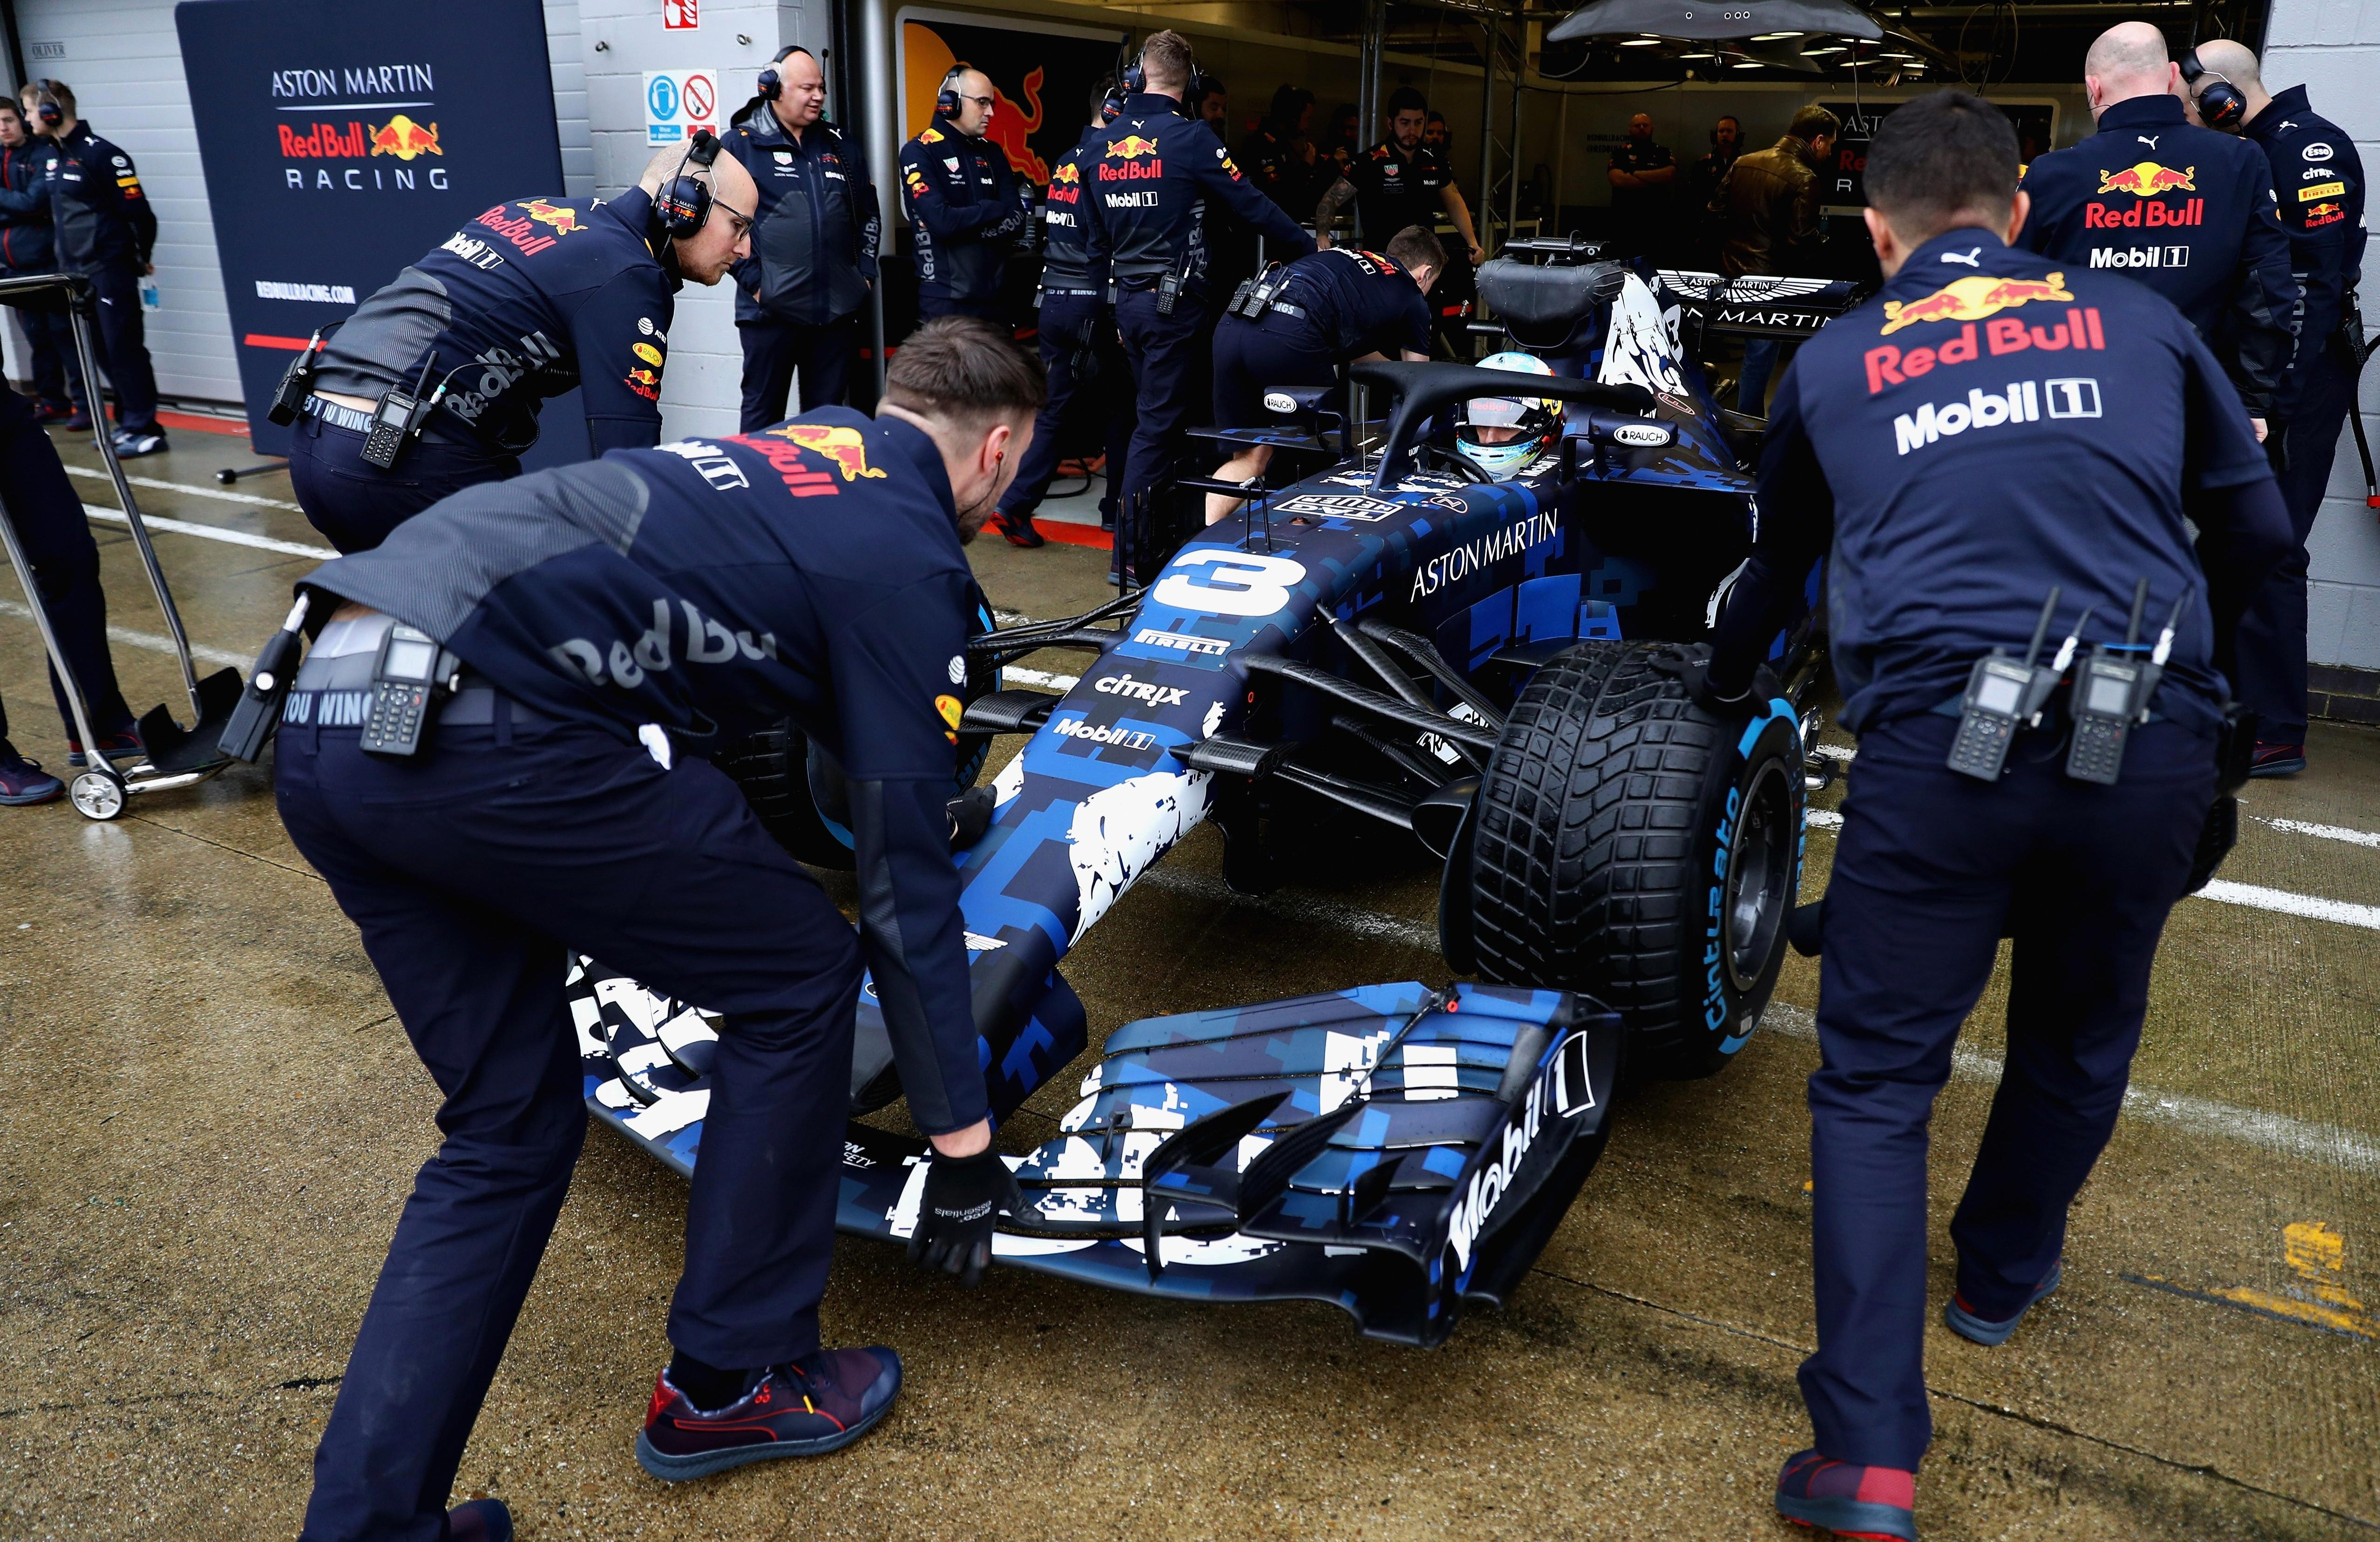 Red Bull hope the new RB14 car can help them to glory this season